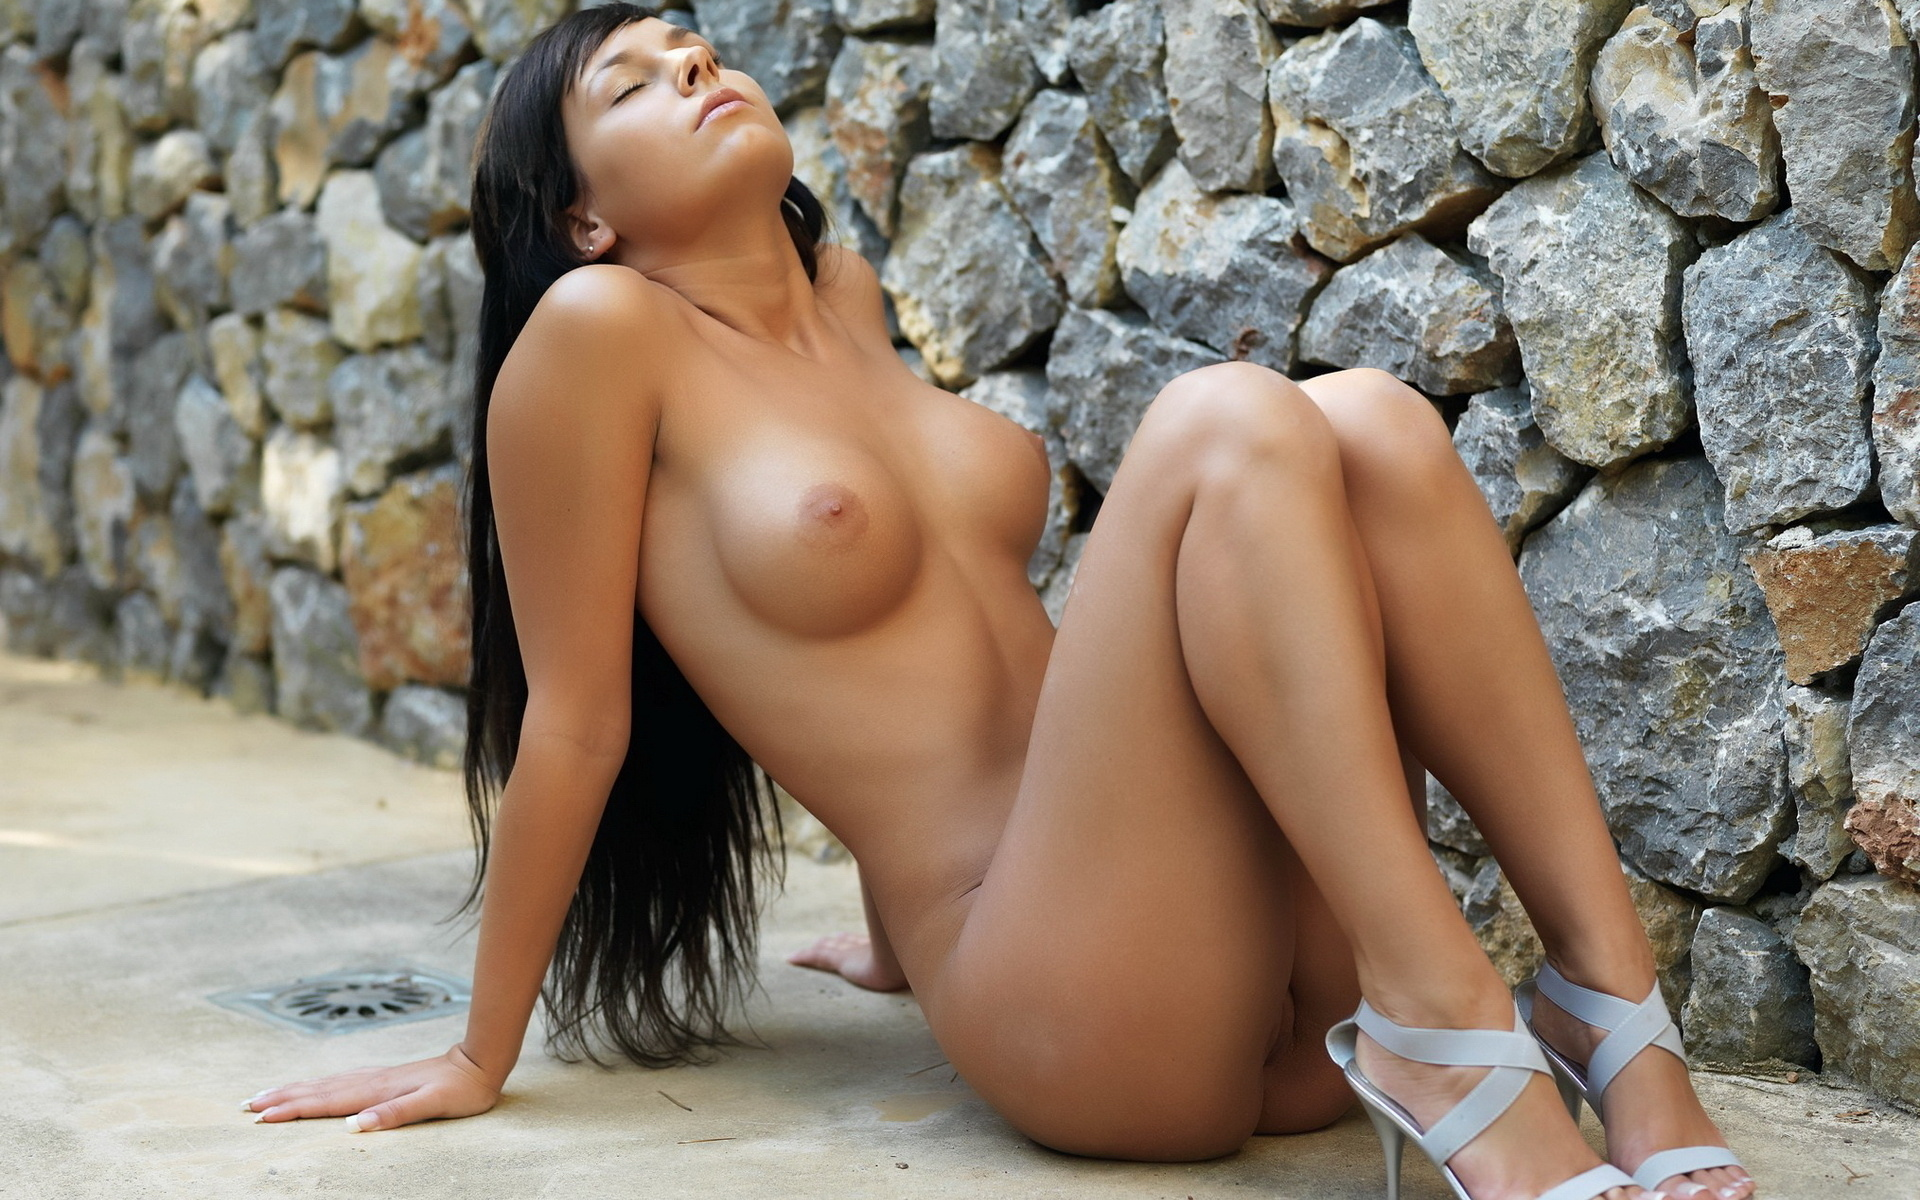 woman-nude-images-for